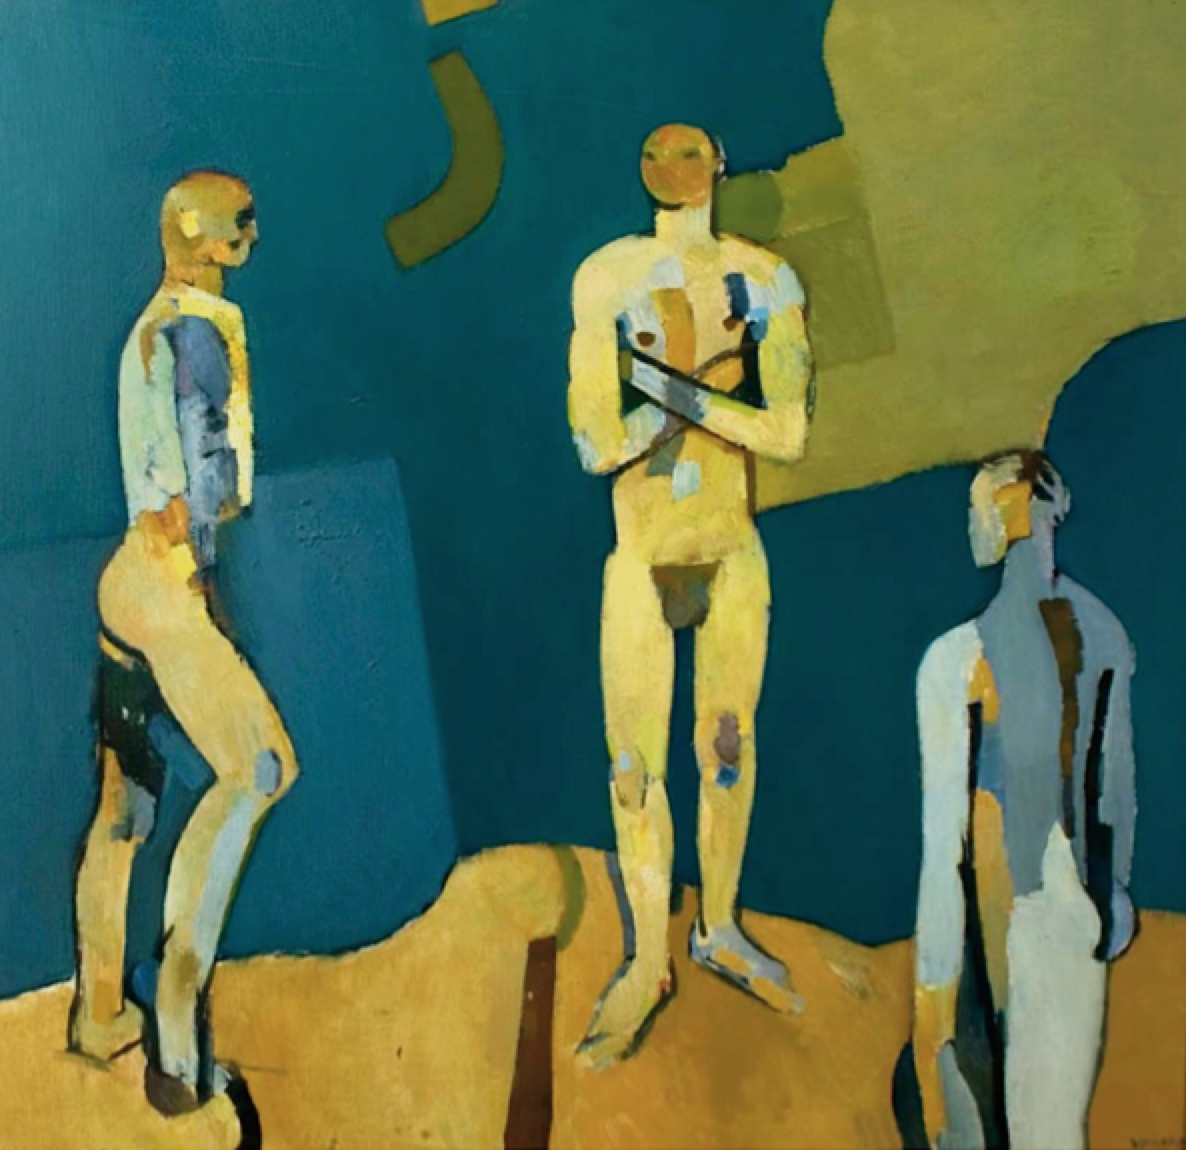 FORTH ASSEMBLY OF FIGURES (TRANSFIGURATION GROUP), 1957